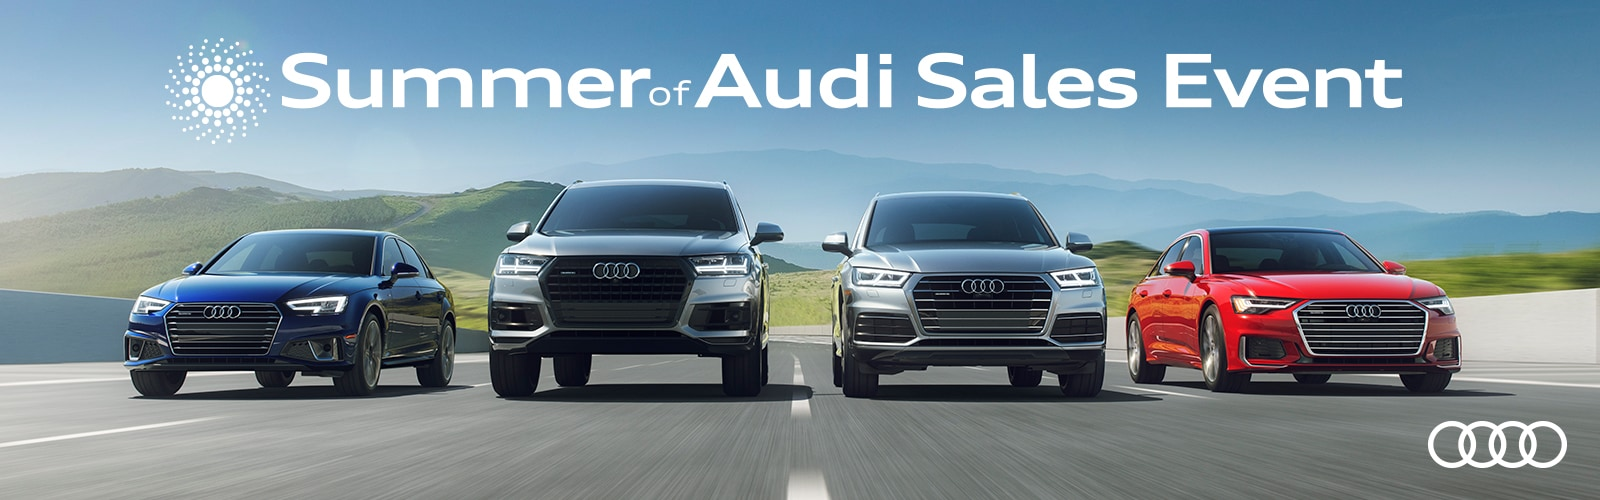 Audi Lease Deals Westchester NY image